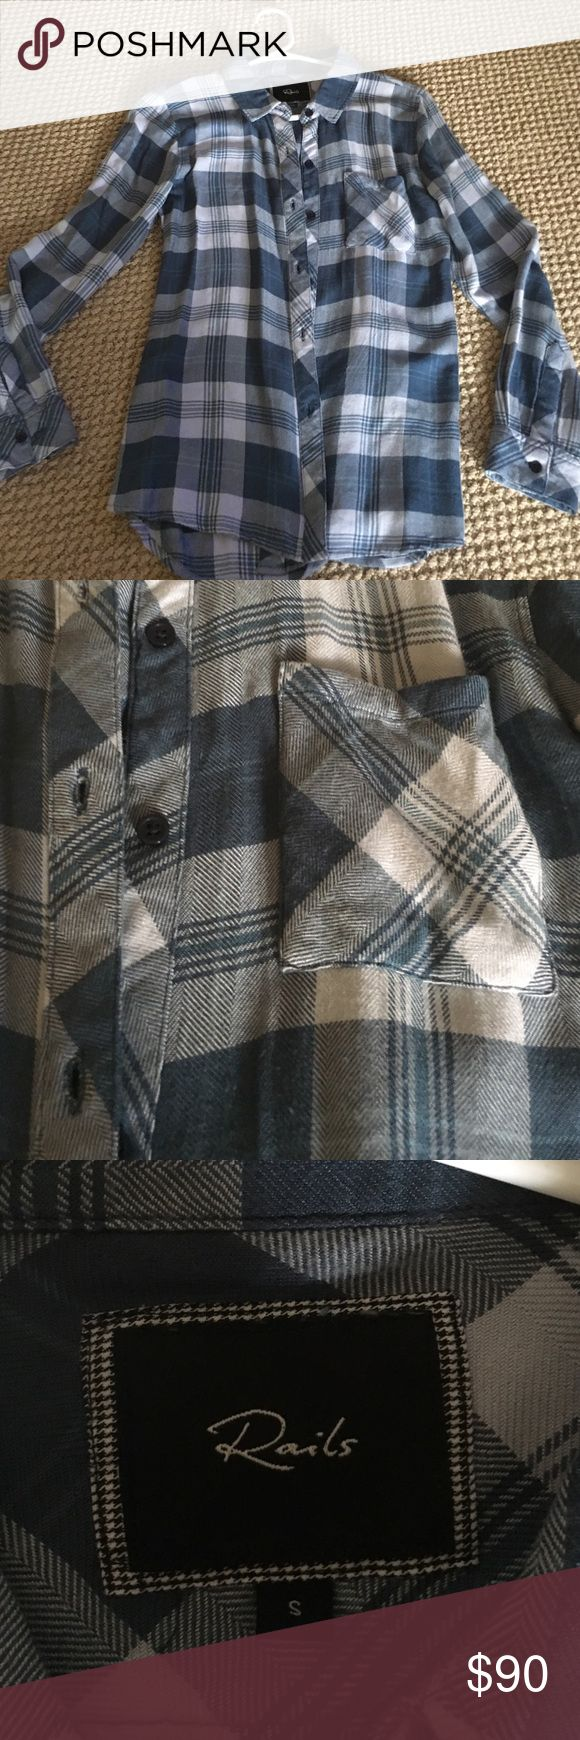 Rails Button Up Like new, only worn a couple of times. Rails Tops